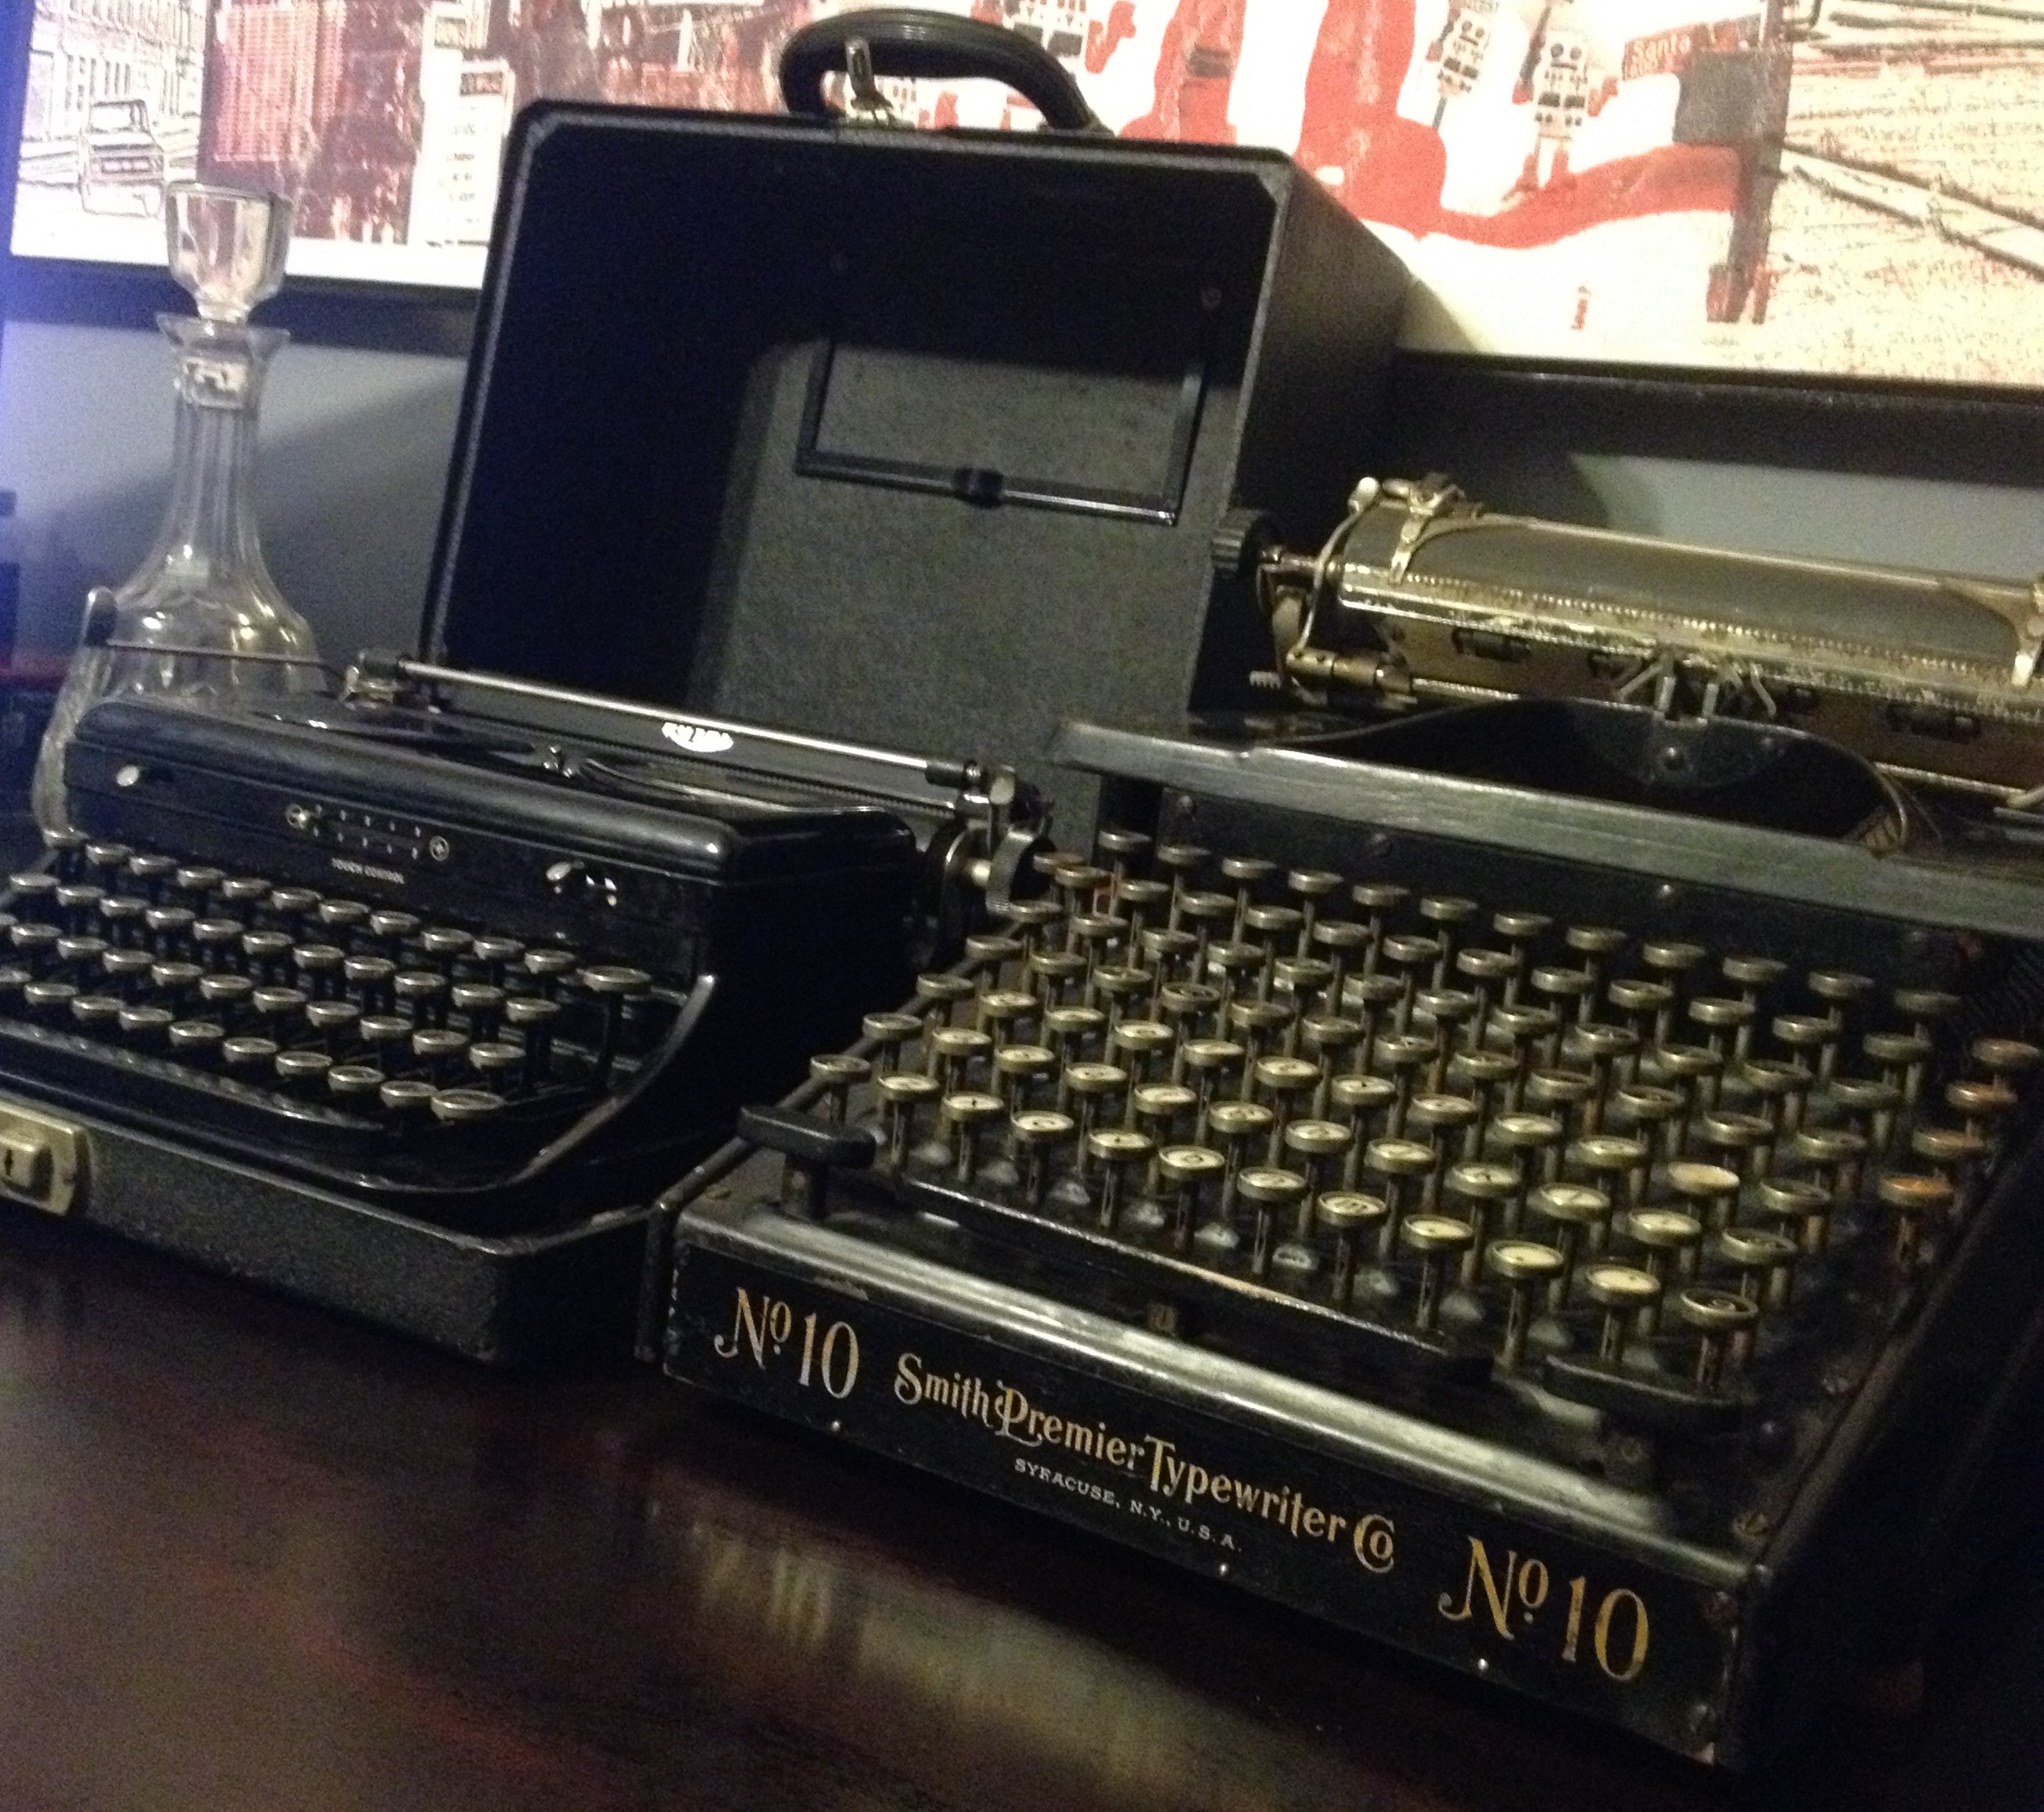 Lot 4 - SMITH PREMIER AND ROYAL ANTIQUE TYPEWRITTERS VERY RARE